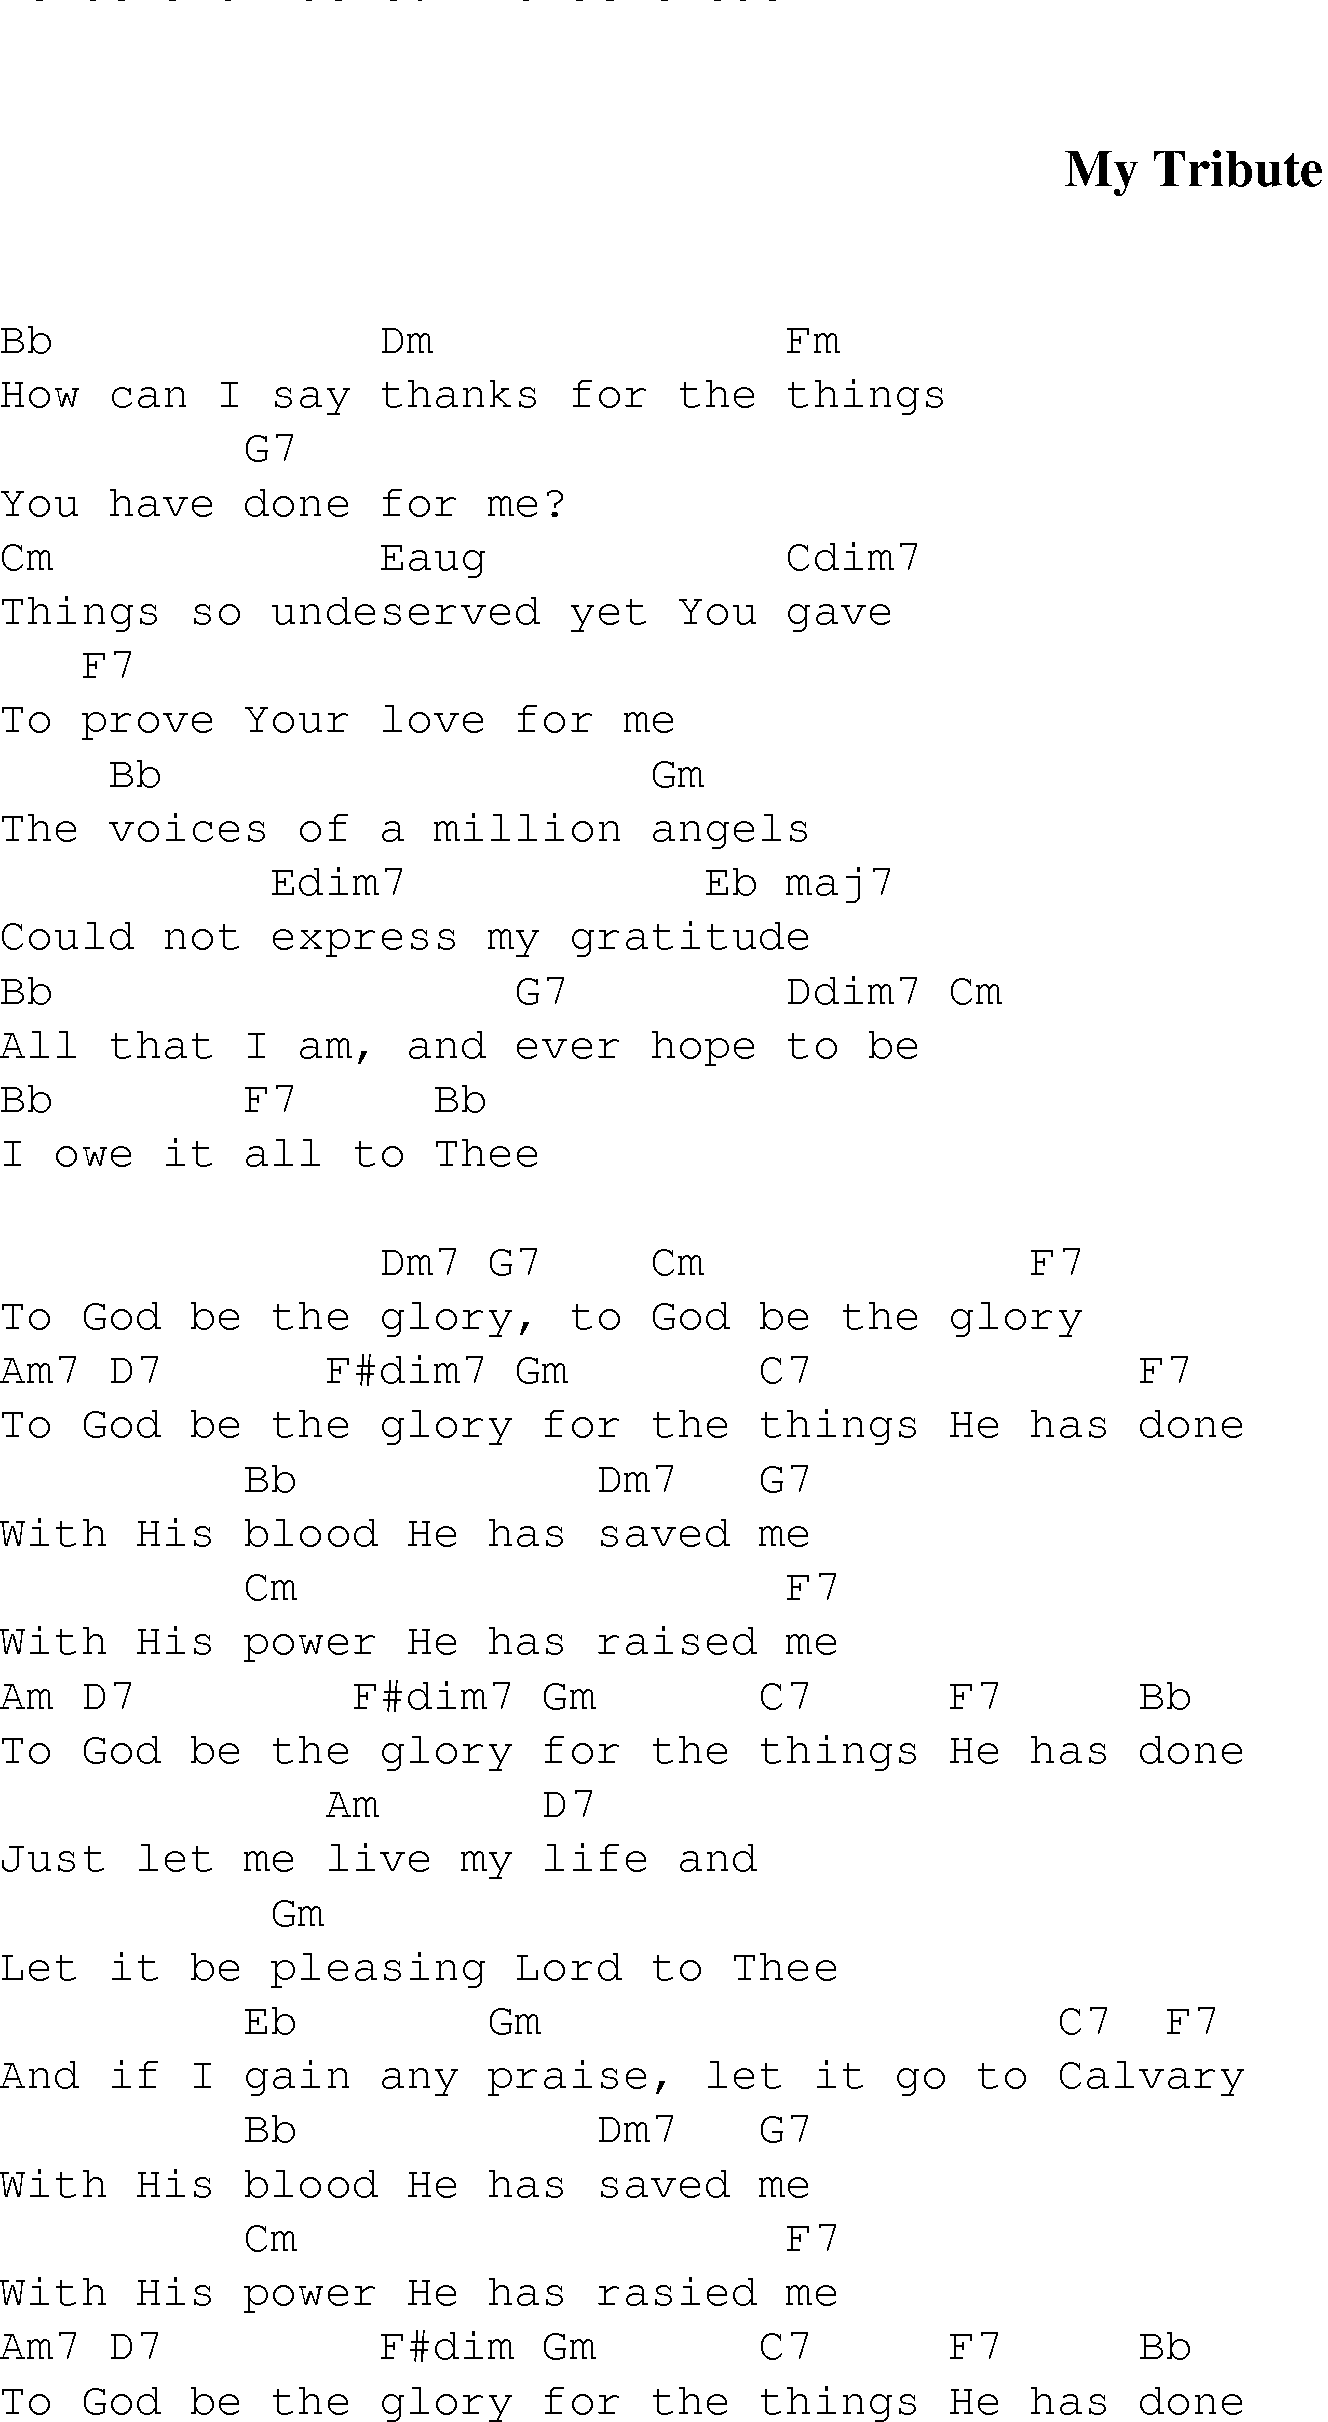 My Tribute Christian Gospel Song Lyrics And Chords